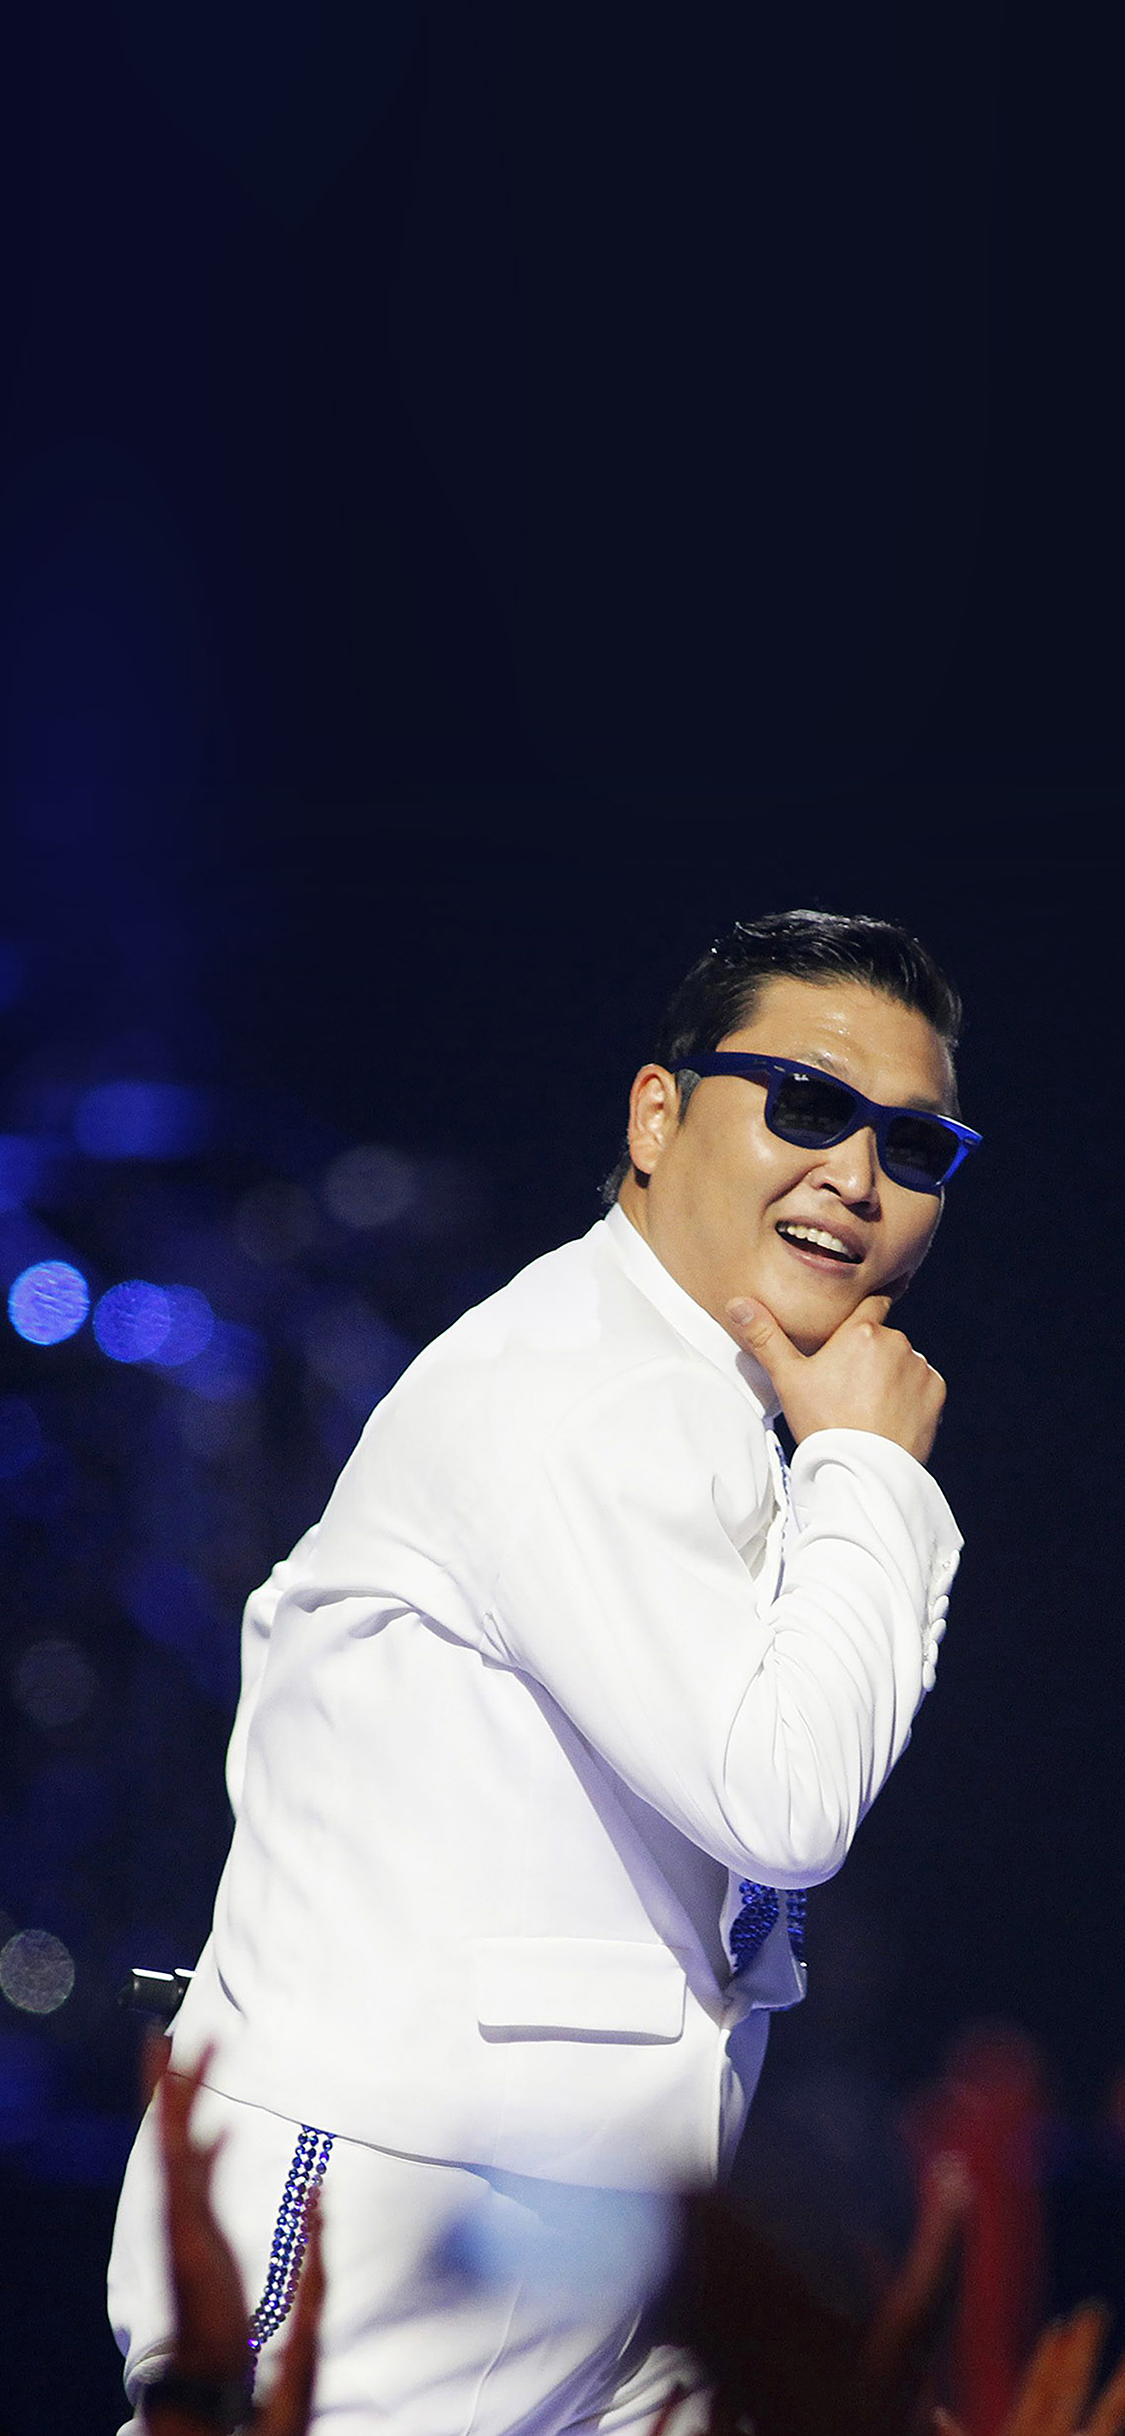 ha21-psy-proud-dance-music-face - Papers.co